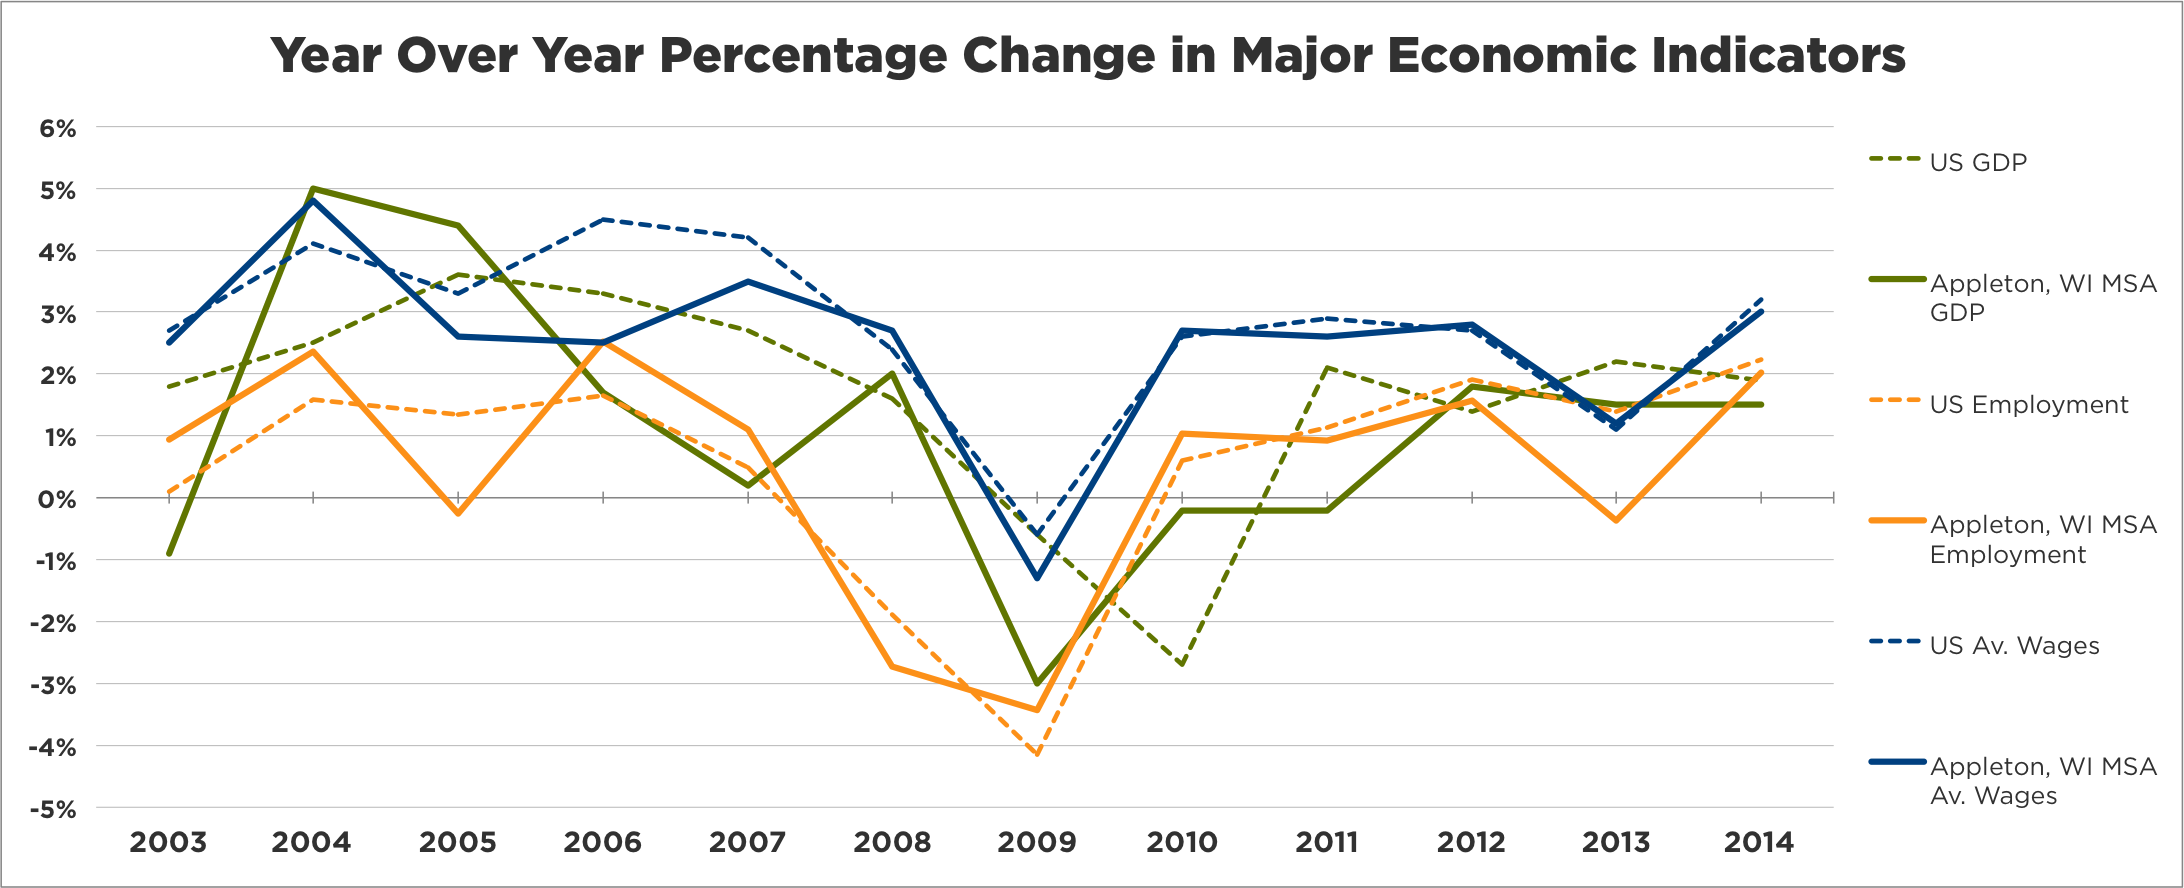 GDP and Its Effects on the National and Fox Cities Economy